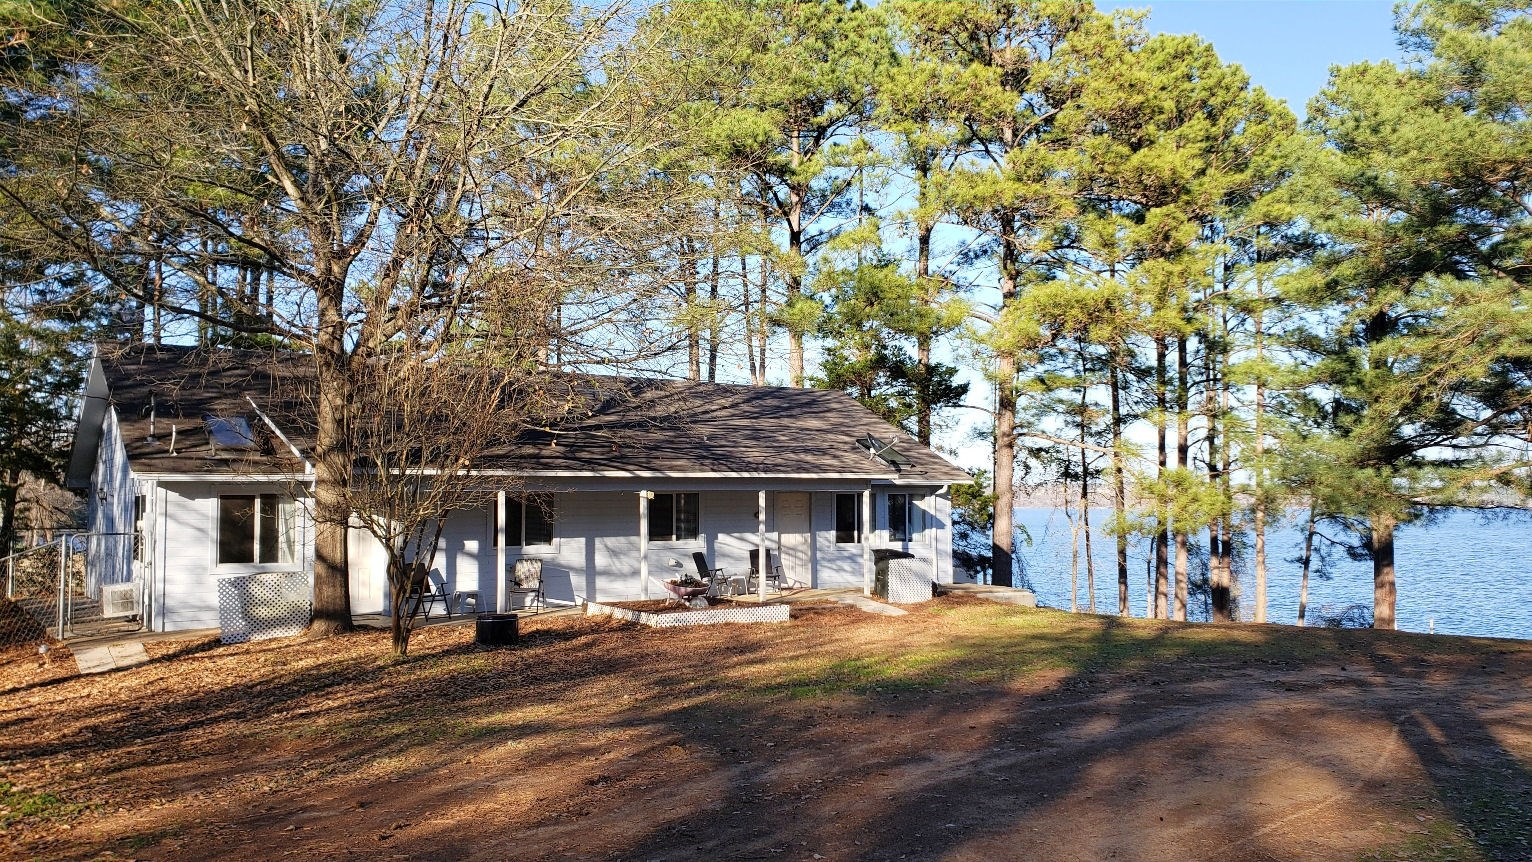 LAKEFRONT DUPLEX FOR RENT IN EAST TEXAS